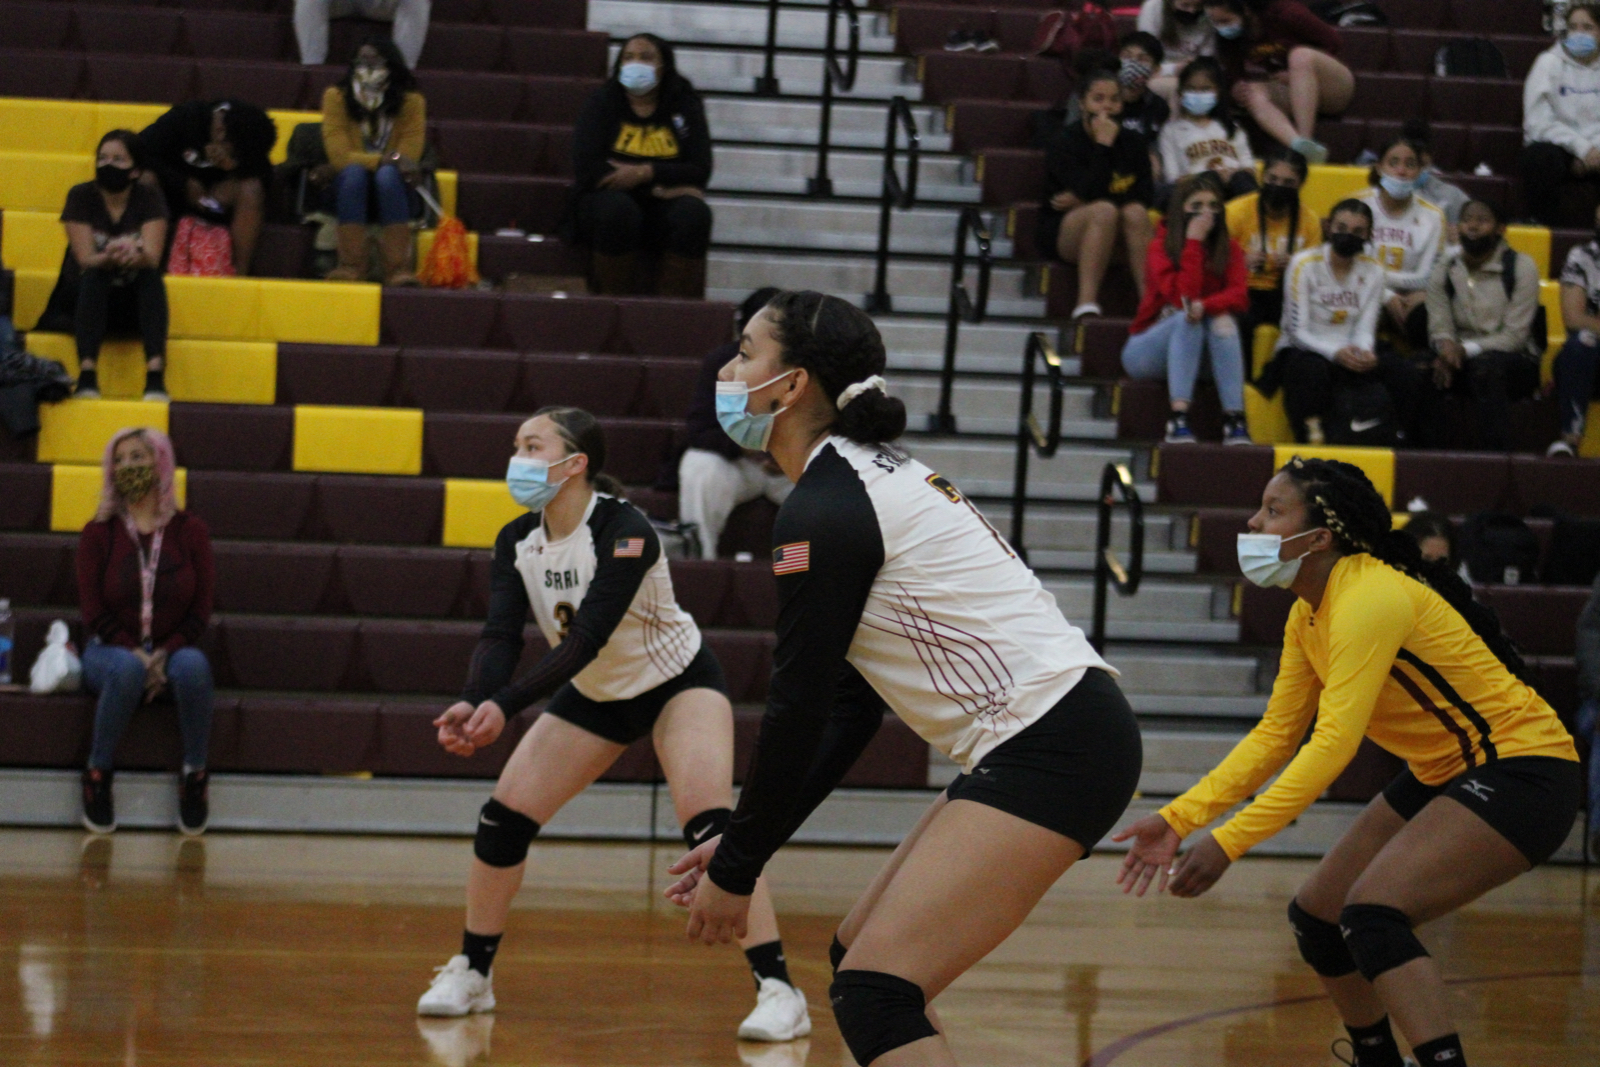 Photo Gallery: Varsity Volleyball vs. Sand Creek